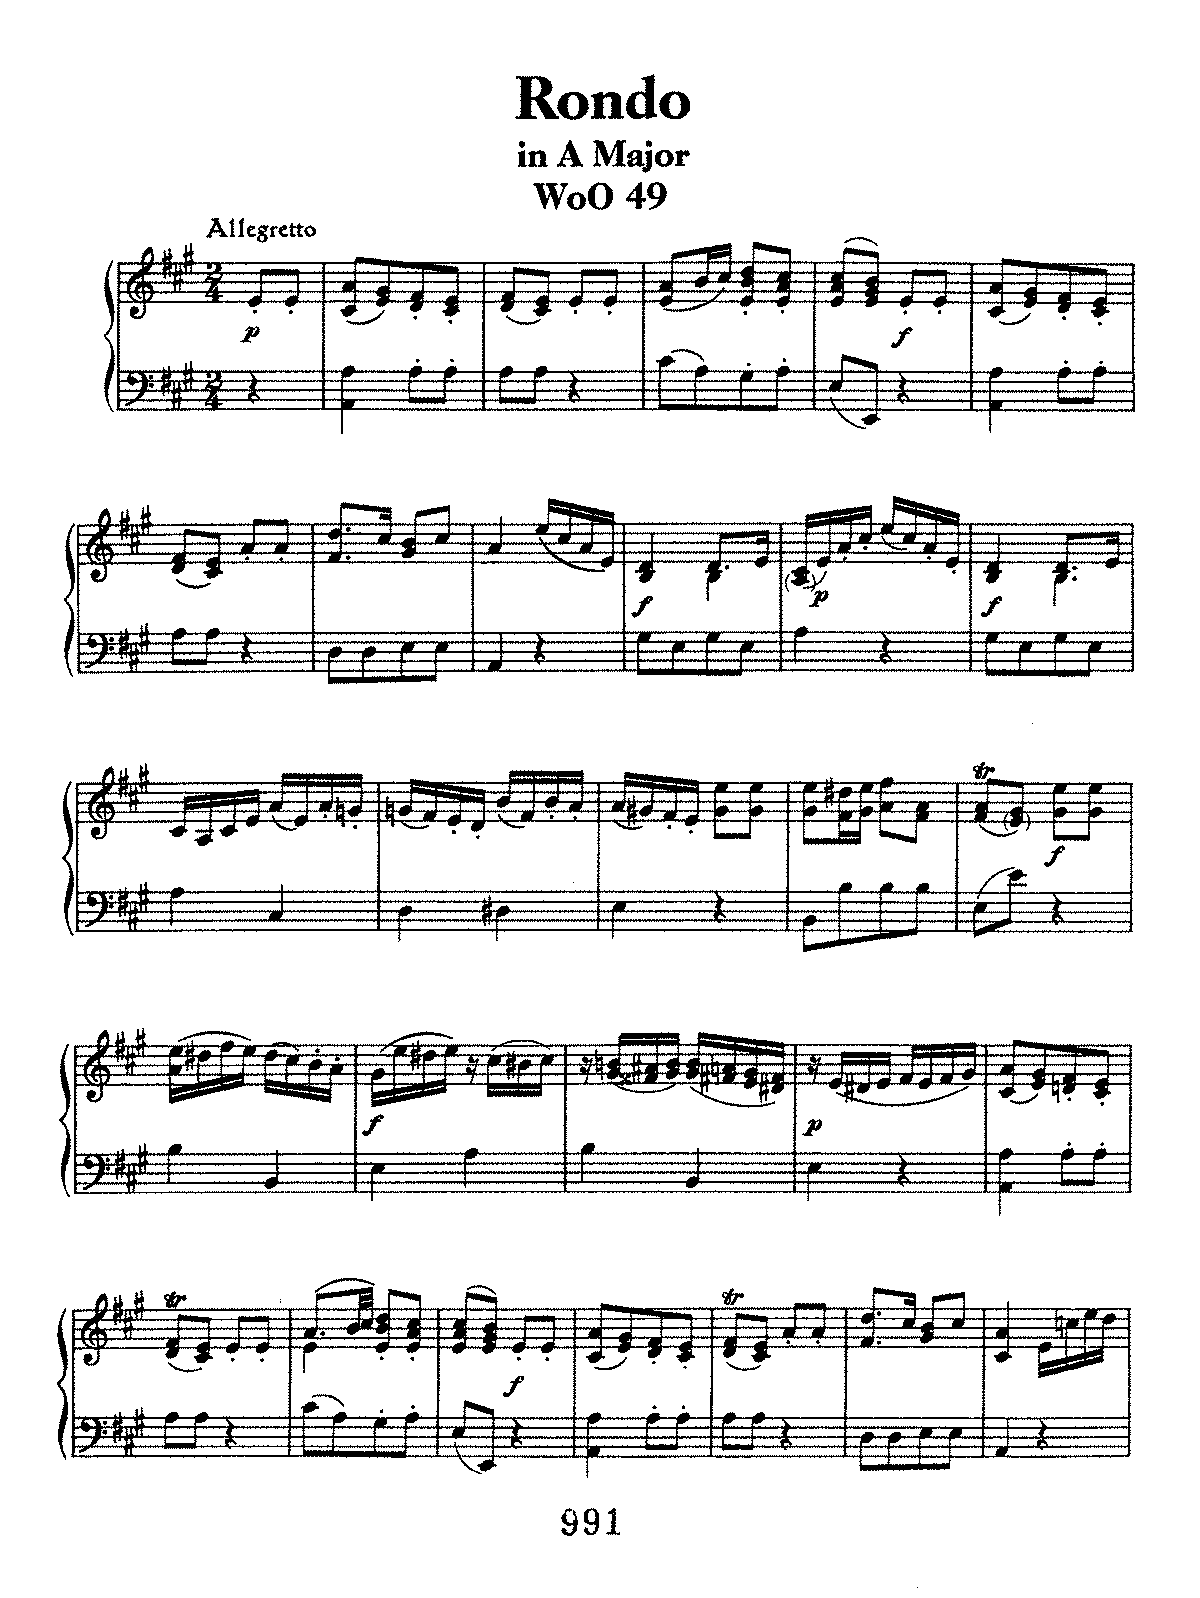 Beethoven woo49 Rondo in A.pdf